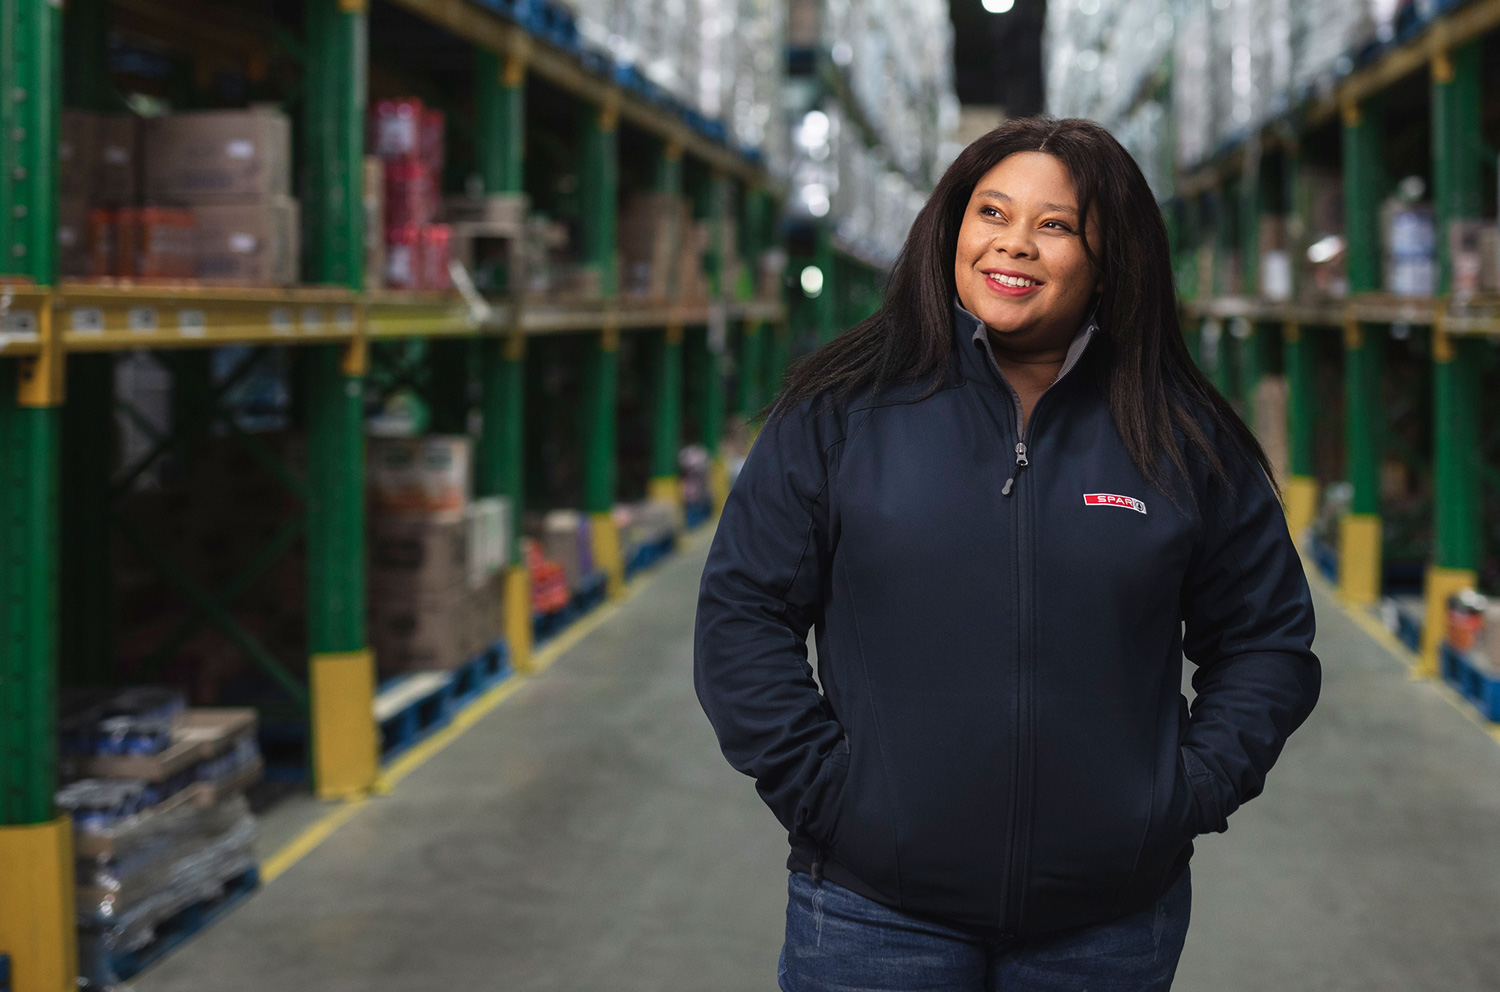 STRONG WOMAN: Siphokazi Mangesi, a Store Clerk in the Inventory Department at the SPAR Distribution Centre in Port Elizabeth, South Africa, is a shining example of the partnership outcomes between the SPAR Group and the Mr Price Foundation's work readiness programme, Jump Start. Image: MRP Foundation / Ross Charnock